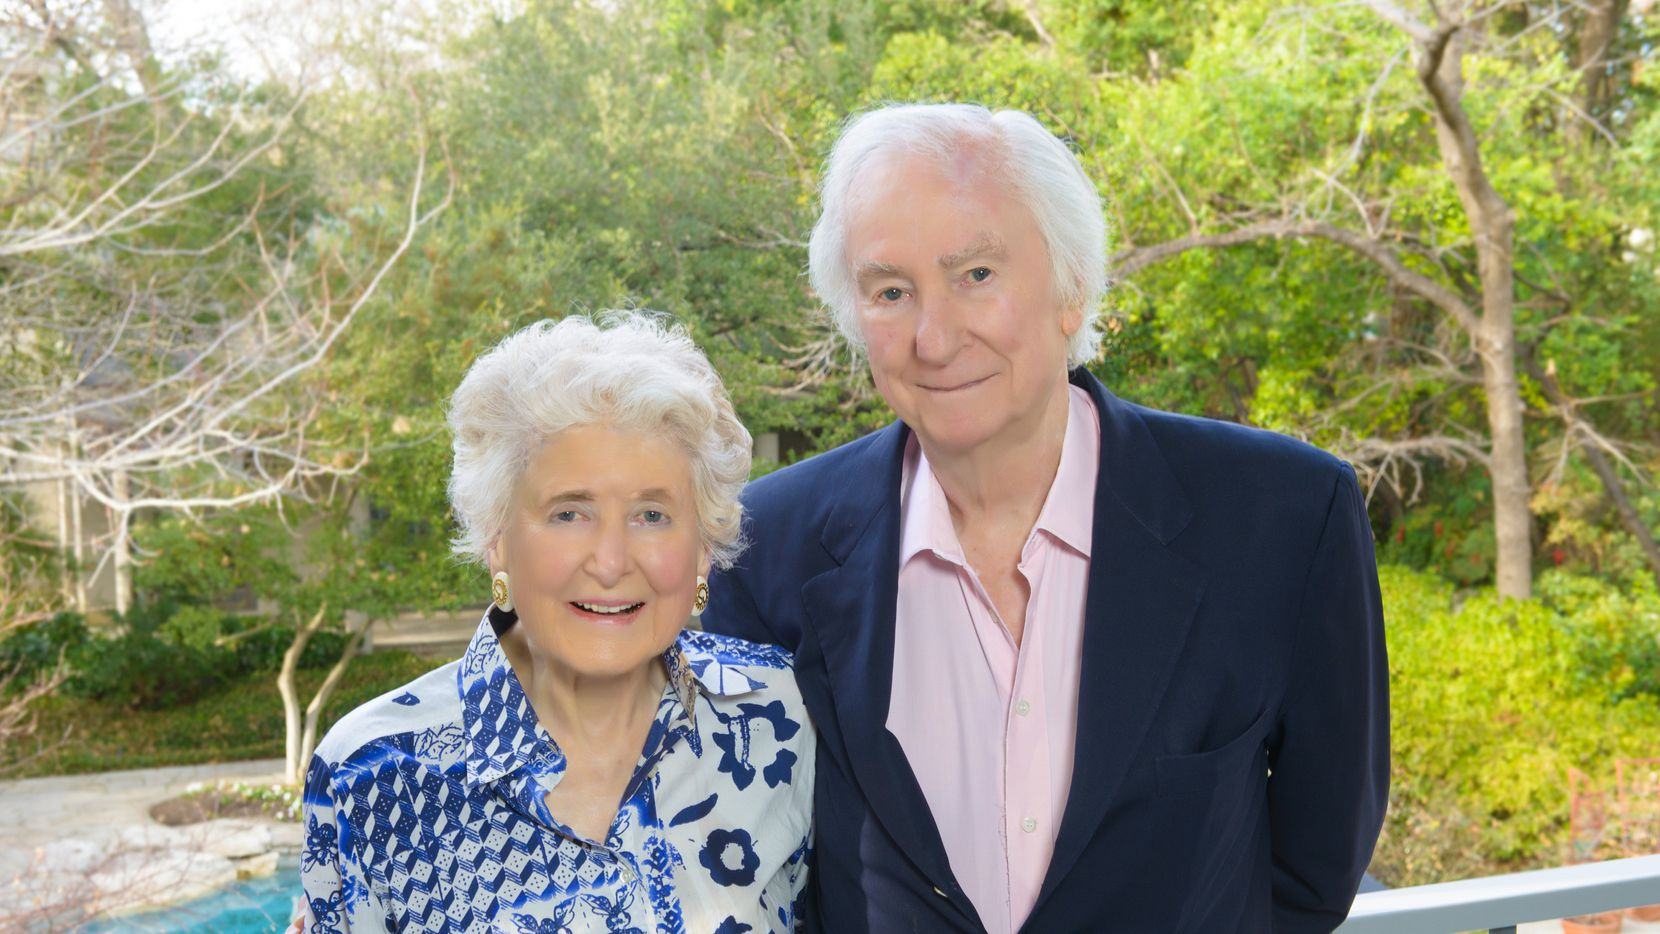 Photo of Edith and Peter O'Donnell Jr. The O'Donnell Foundation gave $36 million to University of Texas Southwestern Medical Center for its new brain institute.